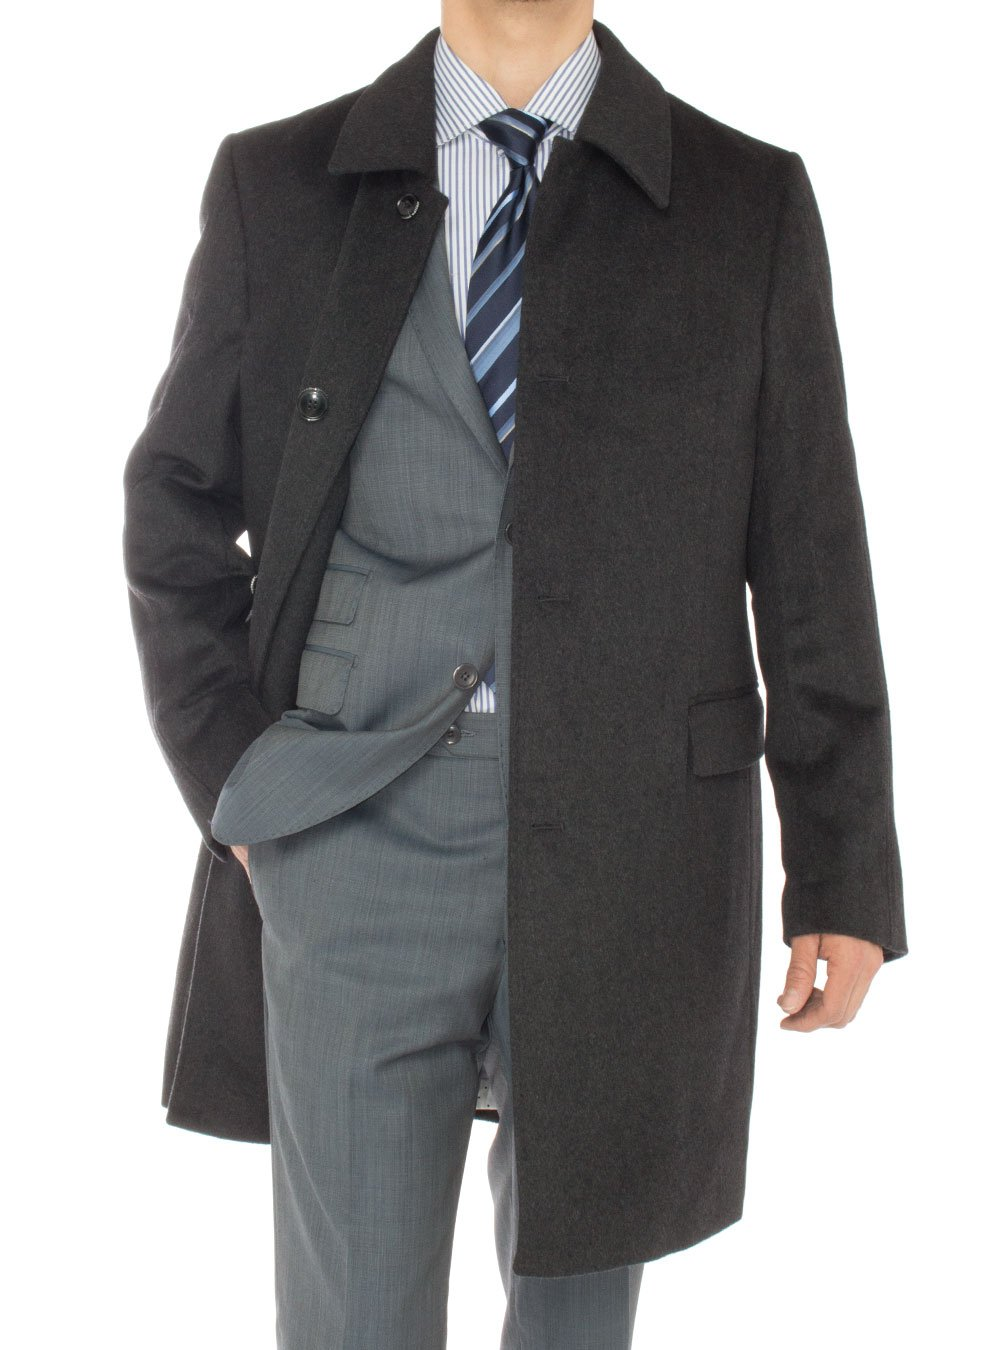 Luciano Natazzi Men's Cashmere Topcoat Classic Knee Length Trench Coat Overcoat (48 US - 58 EU, Charcoal Gray)